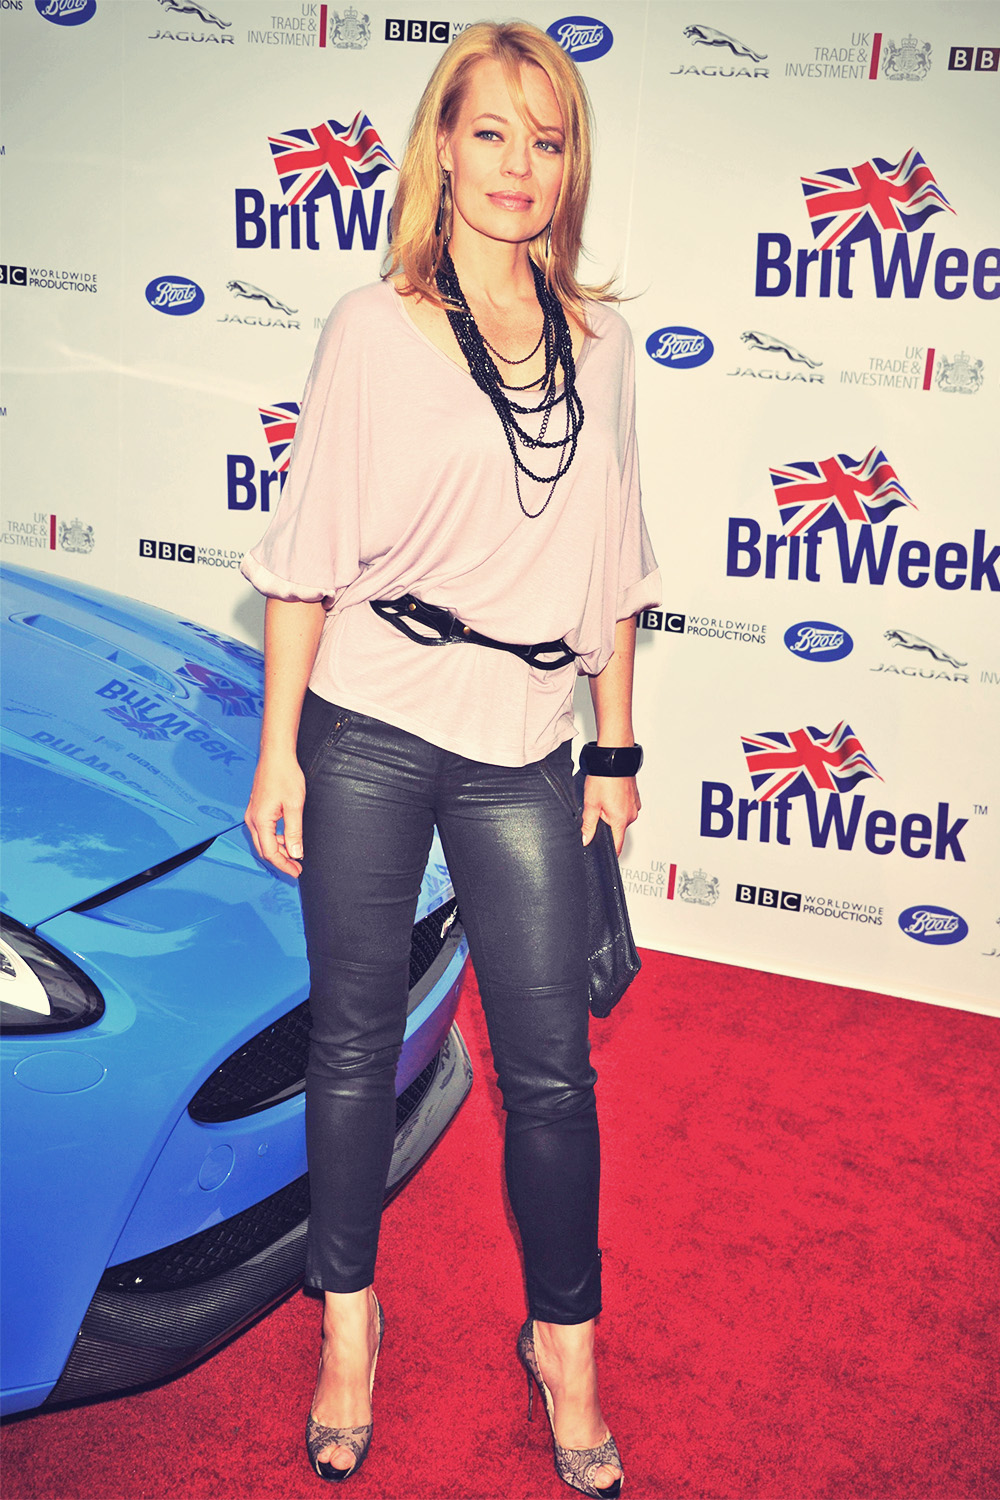 Jeri Ryan attends the 2012 BritWeek Launch Party